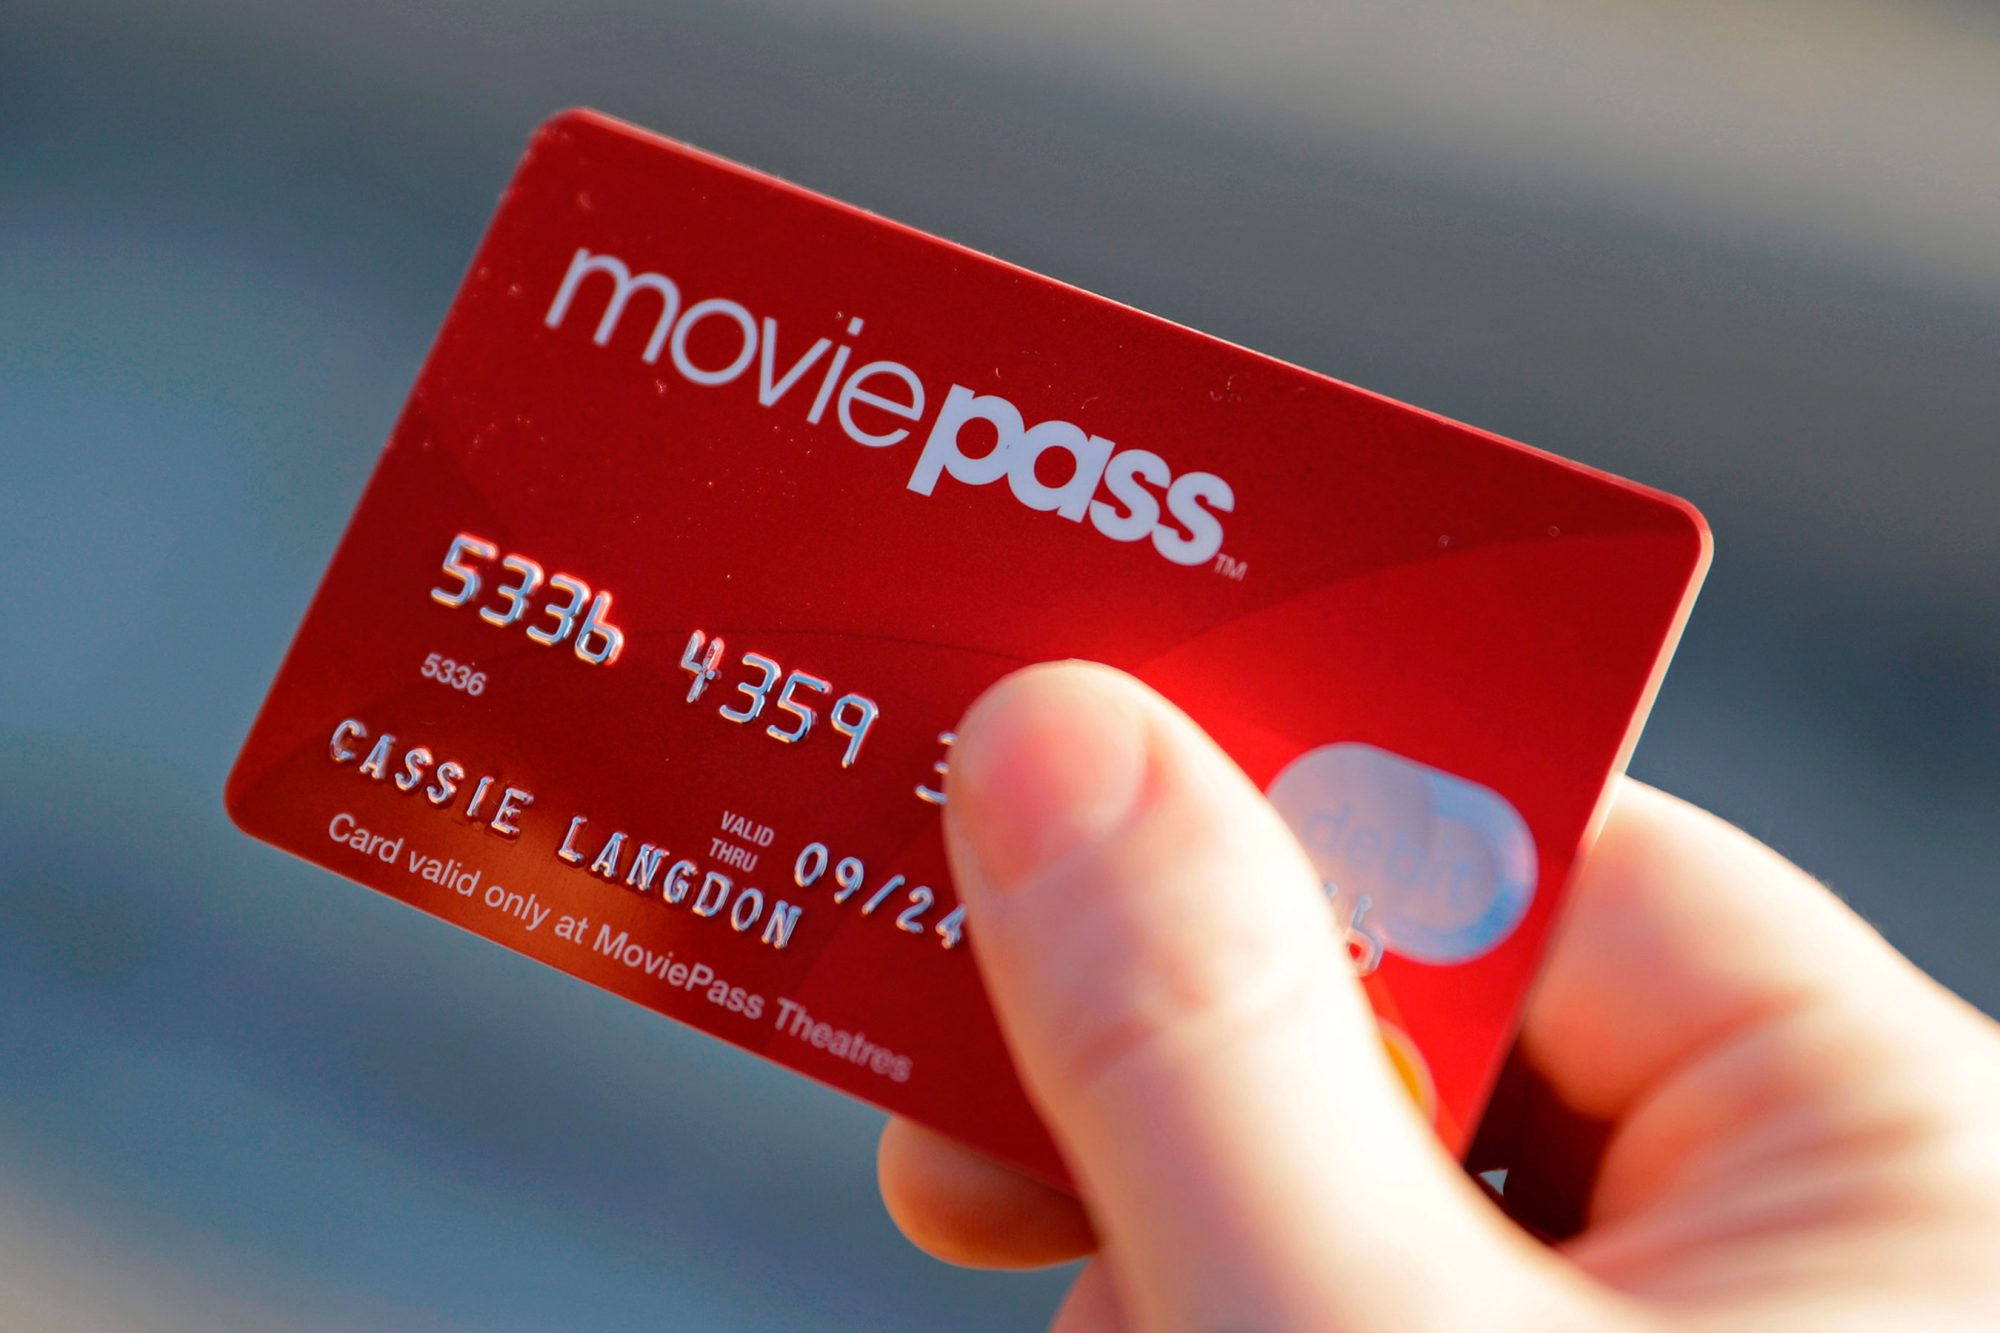 MoviePass Plan Change, Indianapolis, USA - 30 Jan 2018